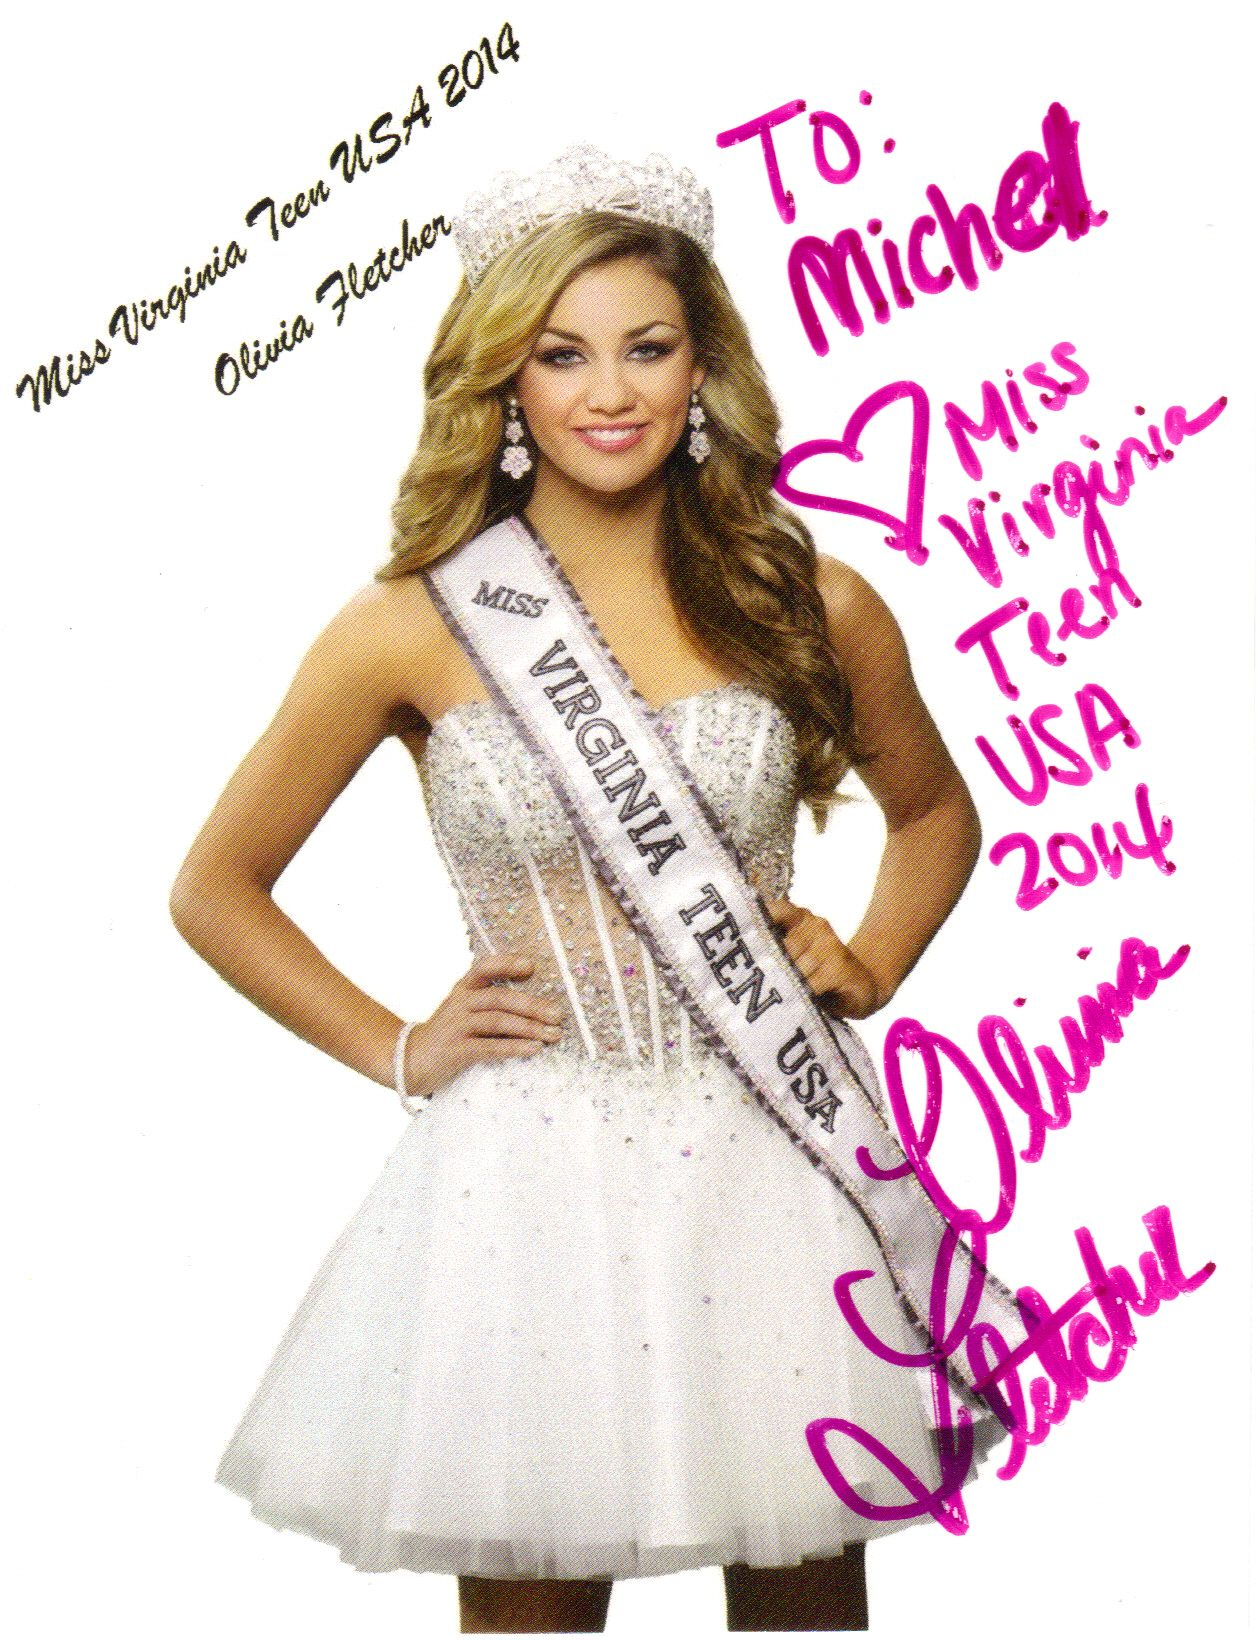 Charisse Haislop - Miss West Virginia USA 2014 - Pageant